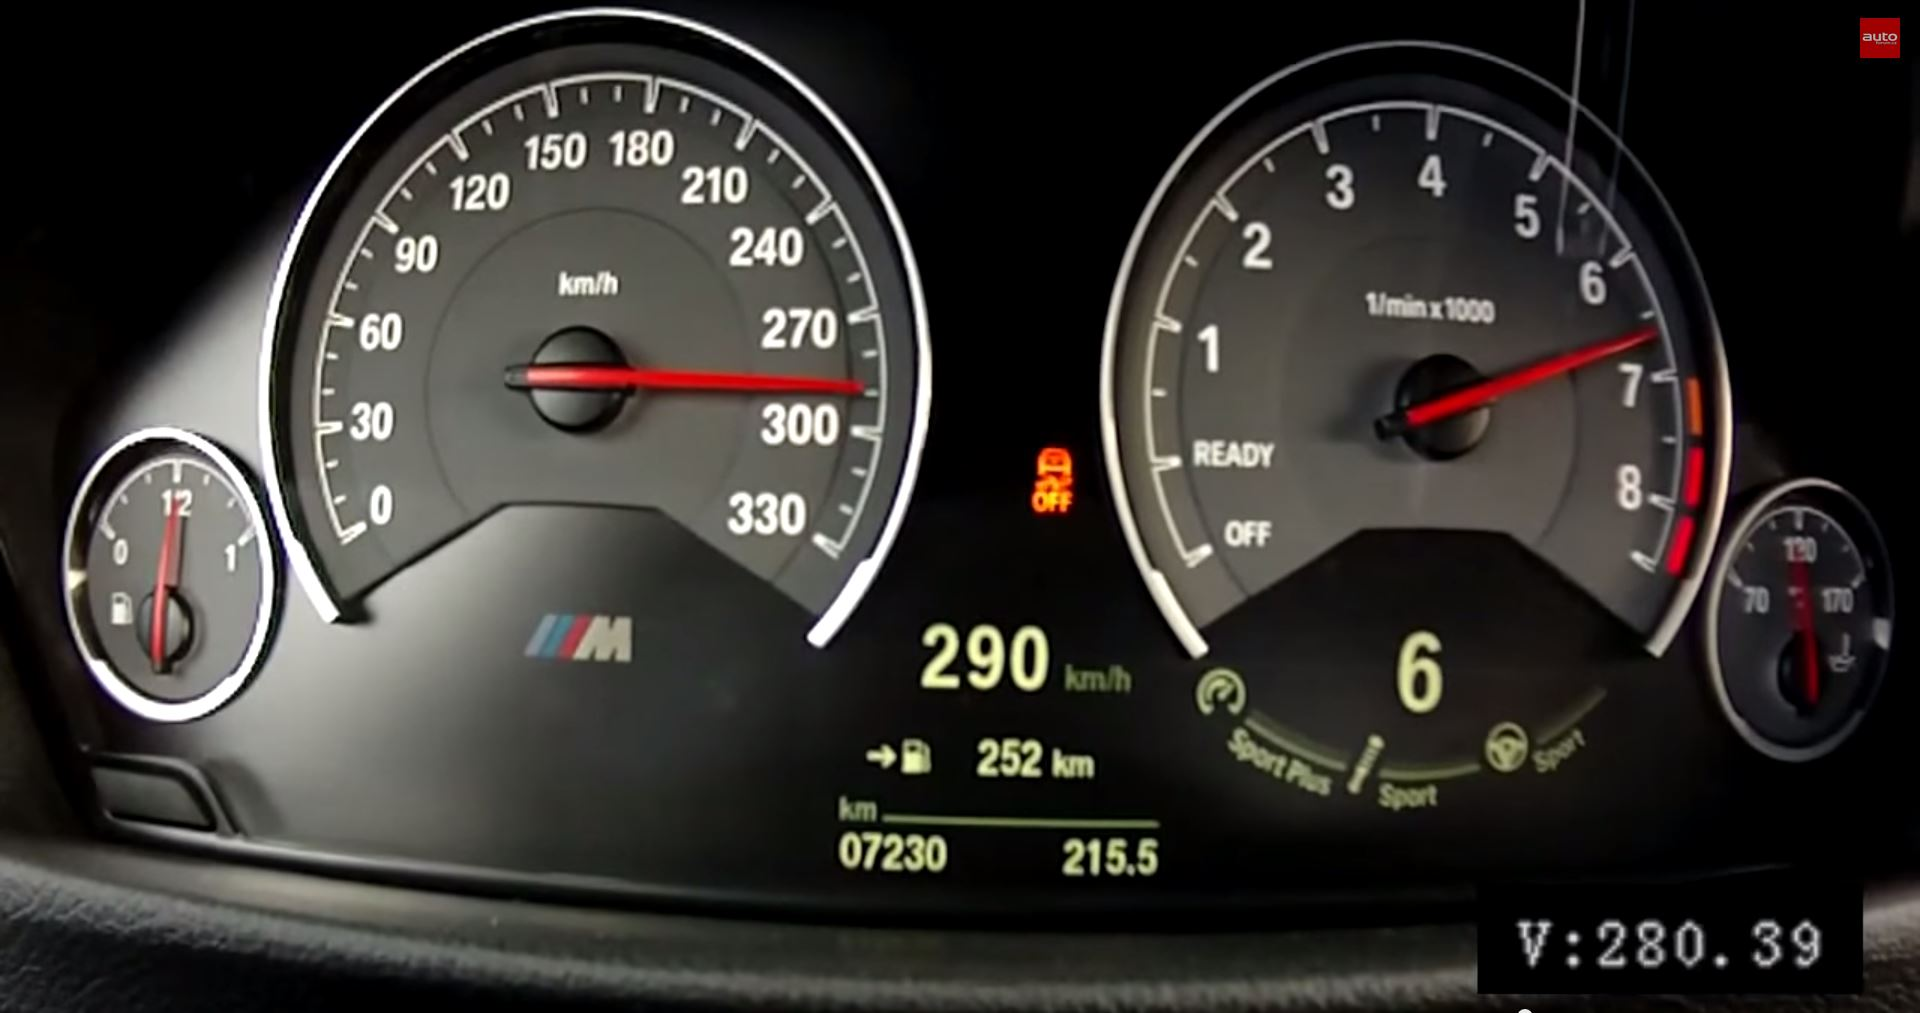 manual or automatic check out a manual f80 m3 going up to 290 km h rh autoevolution com E90 M3 e36 m3 automatic to manual